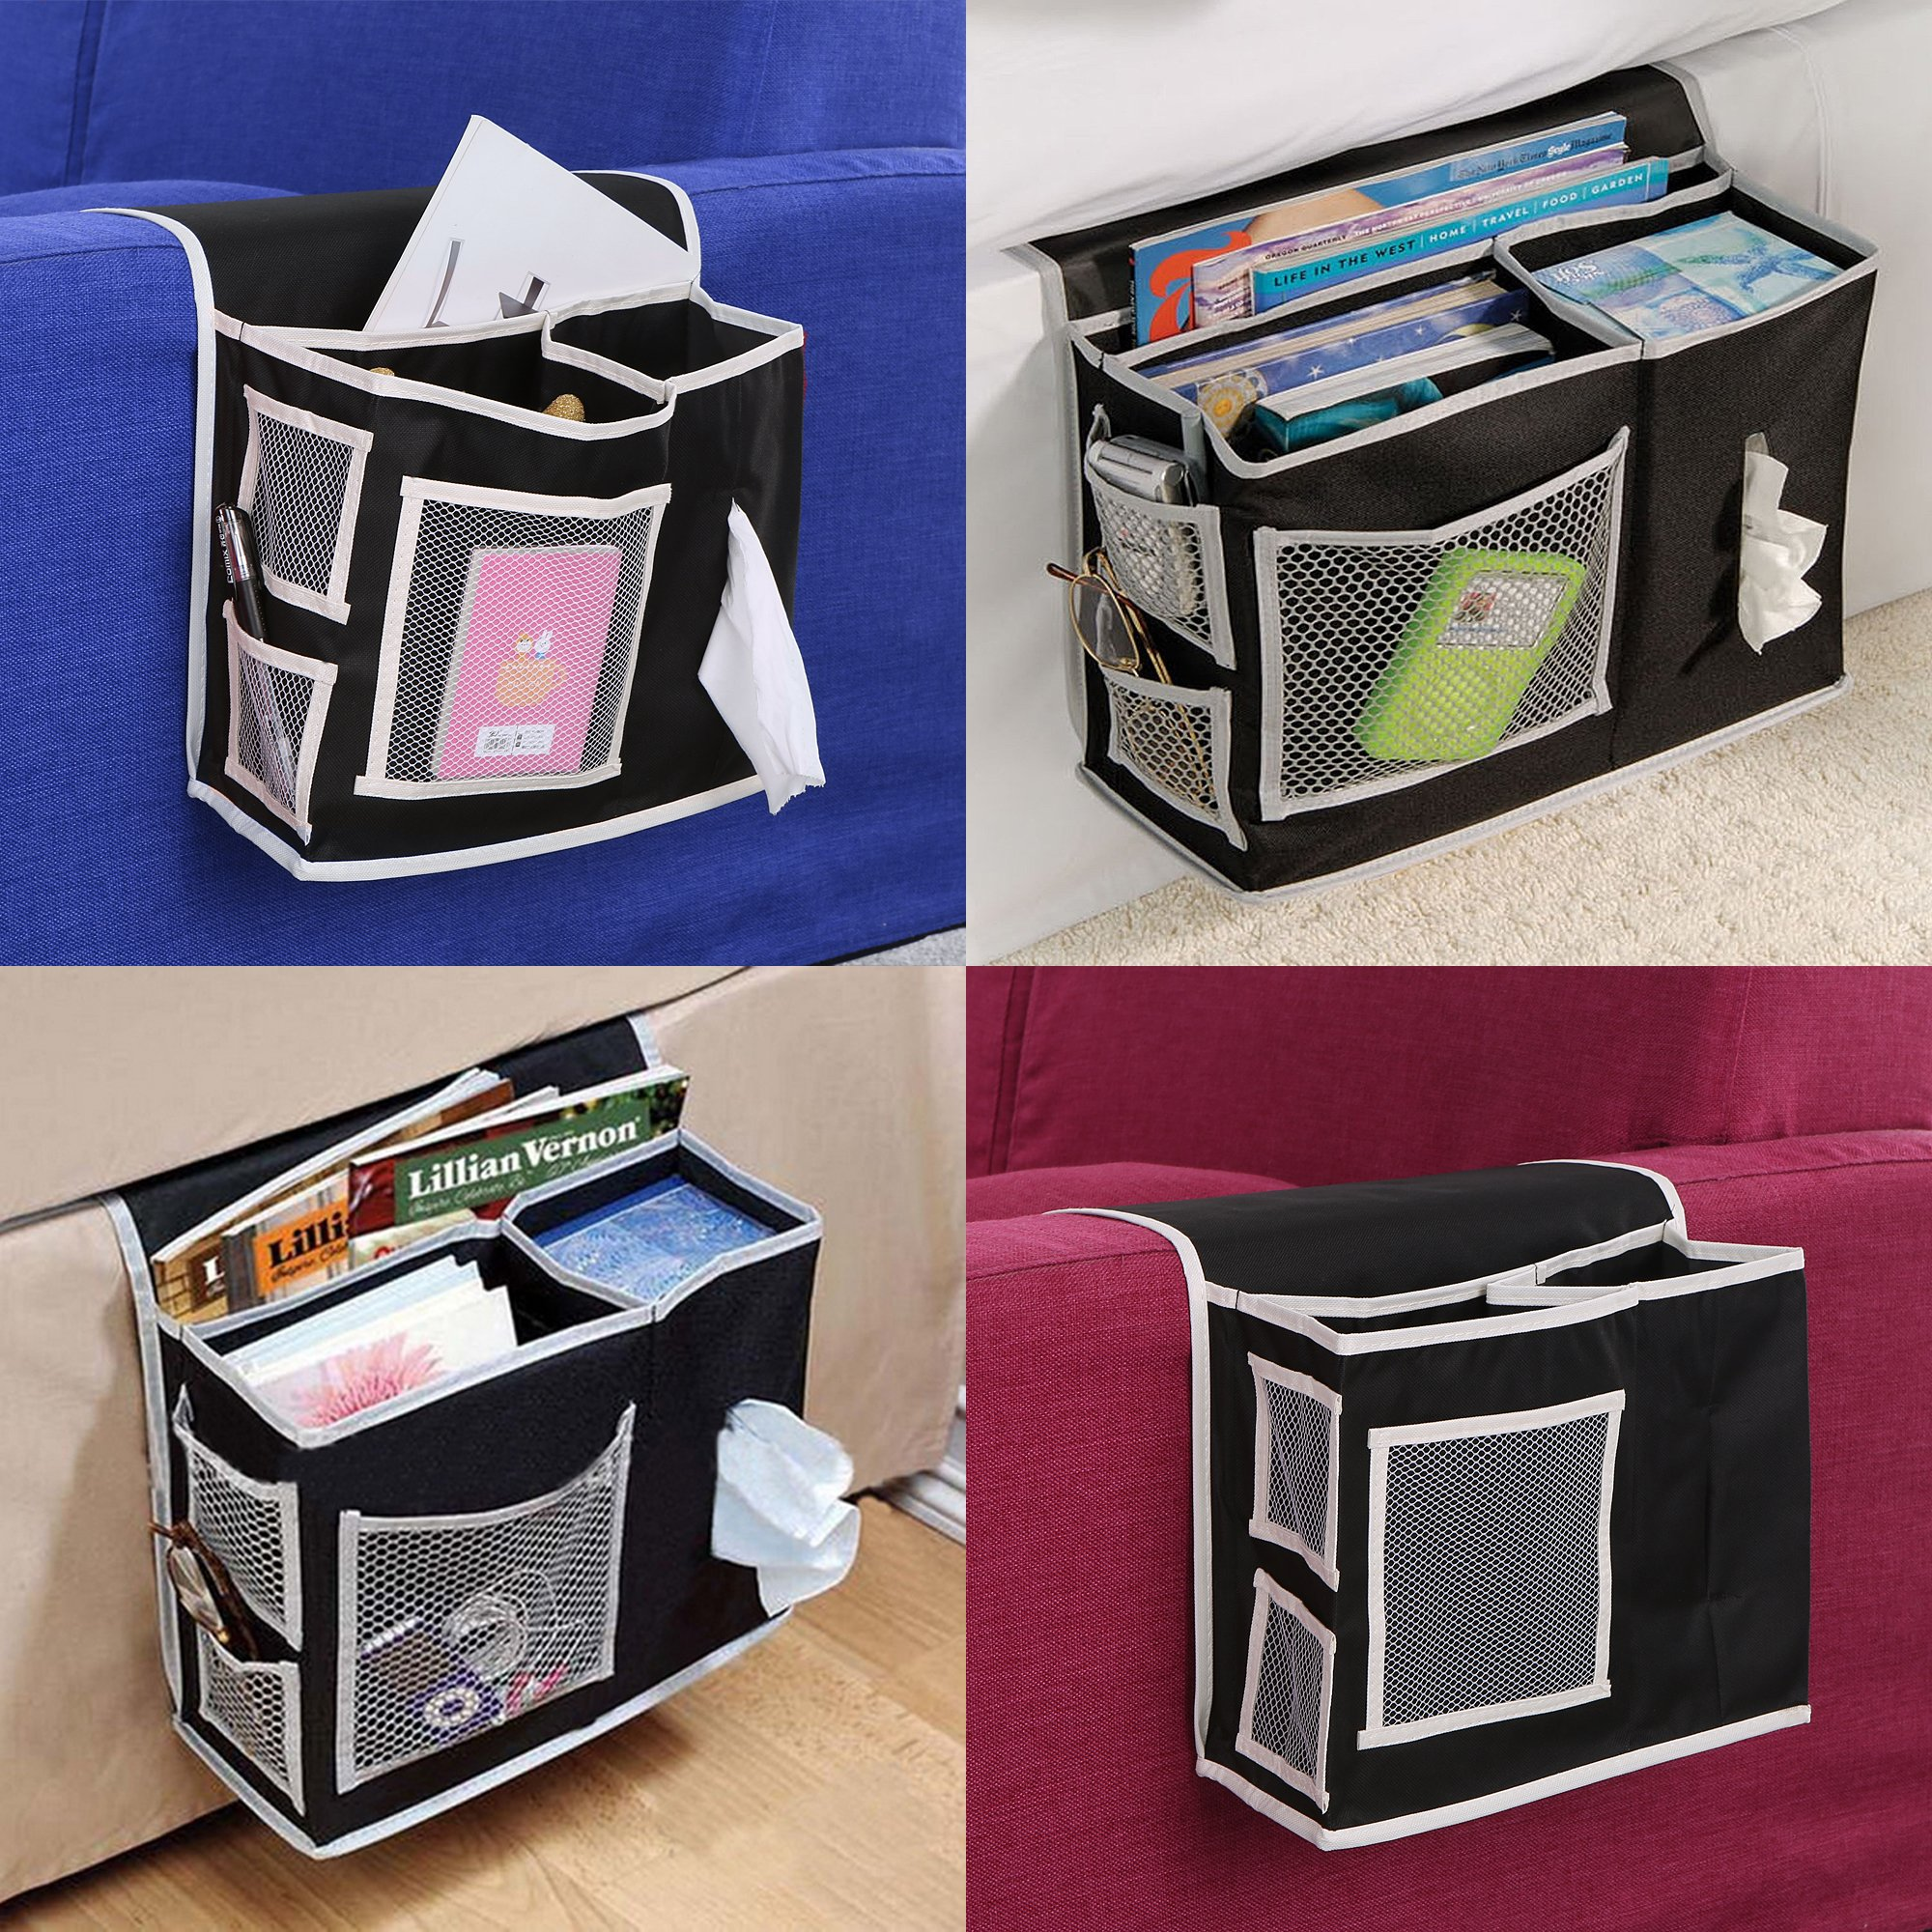 Get Quotations · 6 Pockets Bedside Caddy Hanging Storage Organizer Desk Storage Organizer Bag Bed Rail Headboard Cabinet Hanging & Cheap Bed Storage Caddy find Bed Storage Caddy deals on line at ...